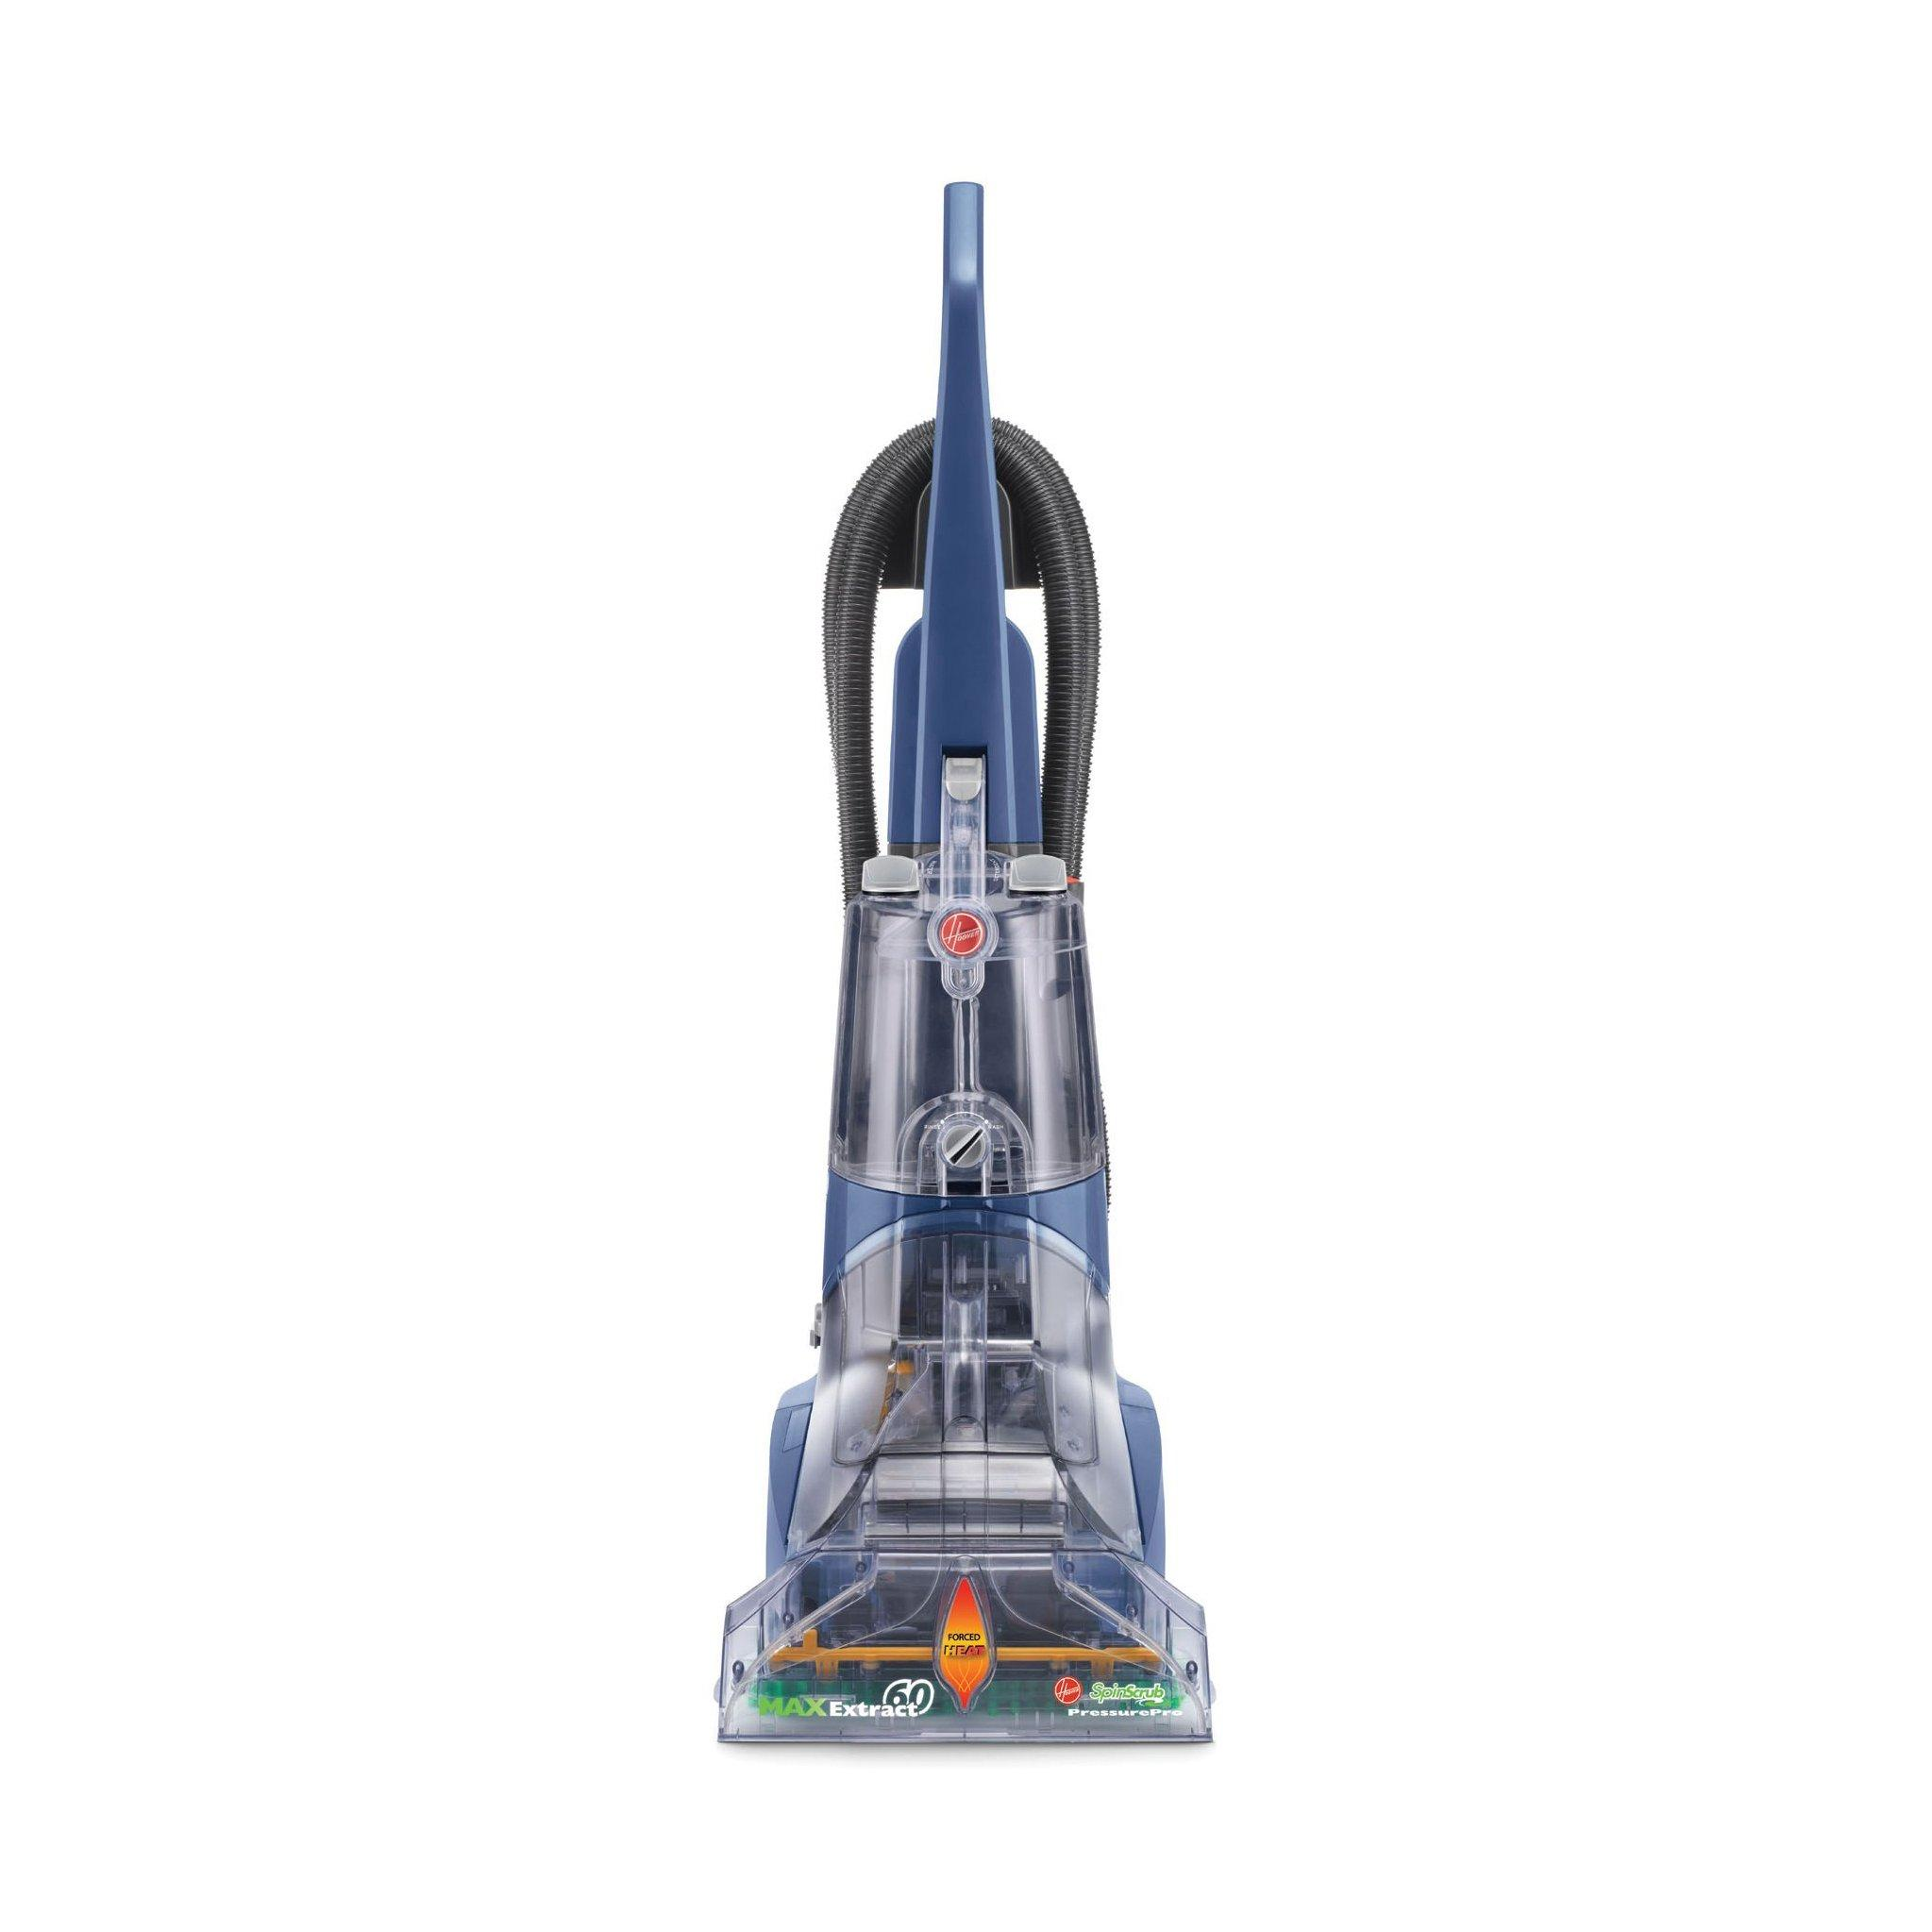 Reconditioned Max Extract 60 Pressure Pro Deep Carpet Cleaner